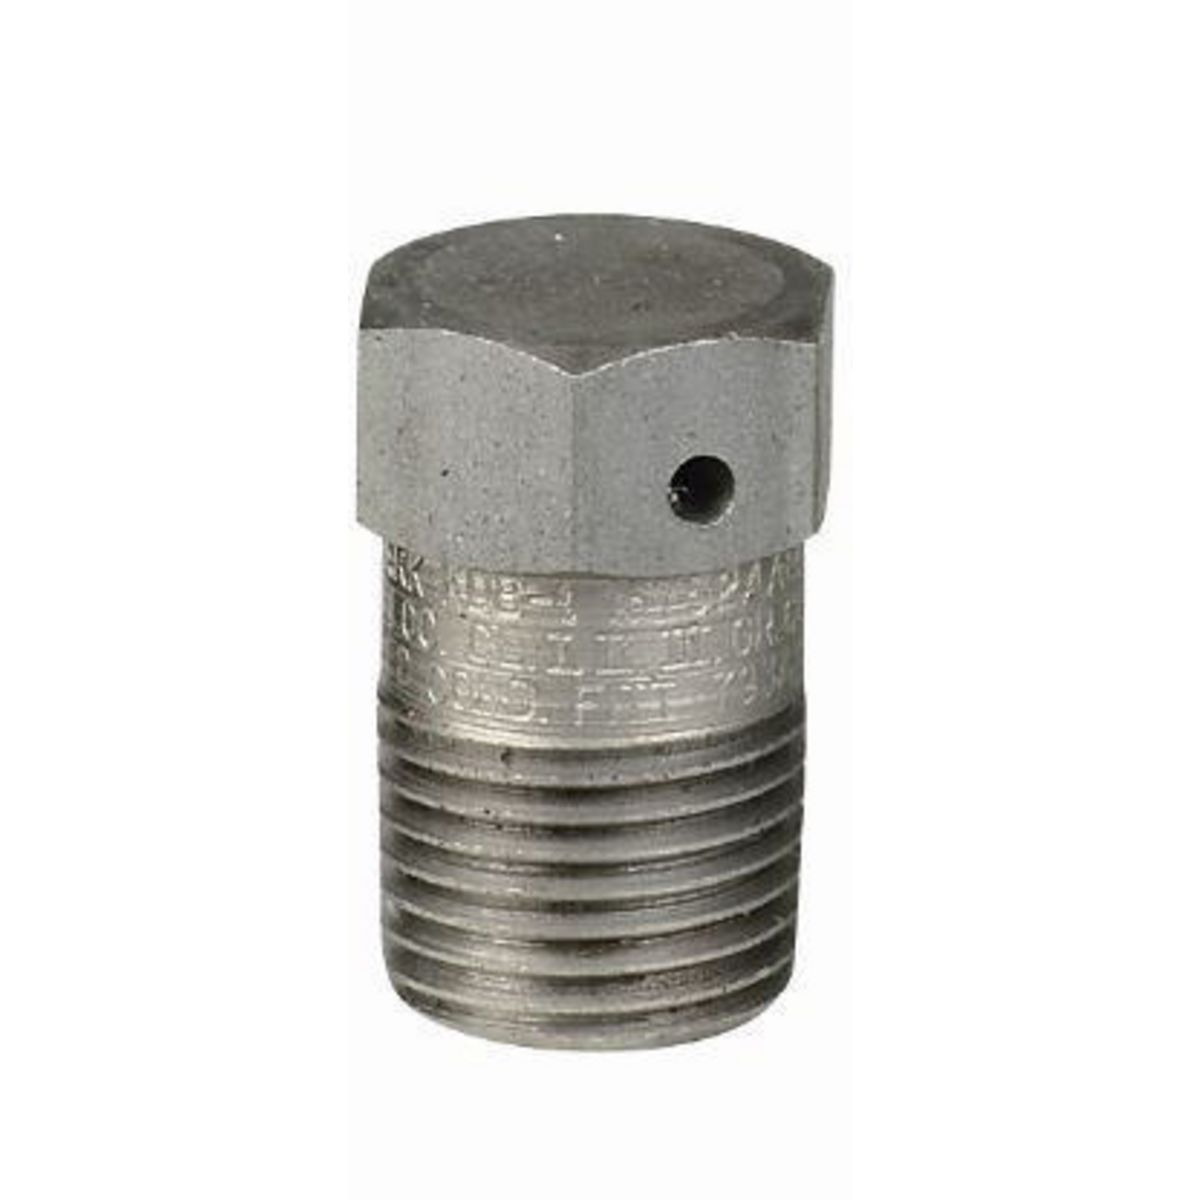 Killark® KDB-1 Drain and Breather, 1/2 in NPT, 303 Stainless Steel